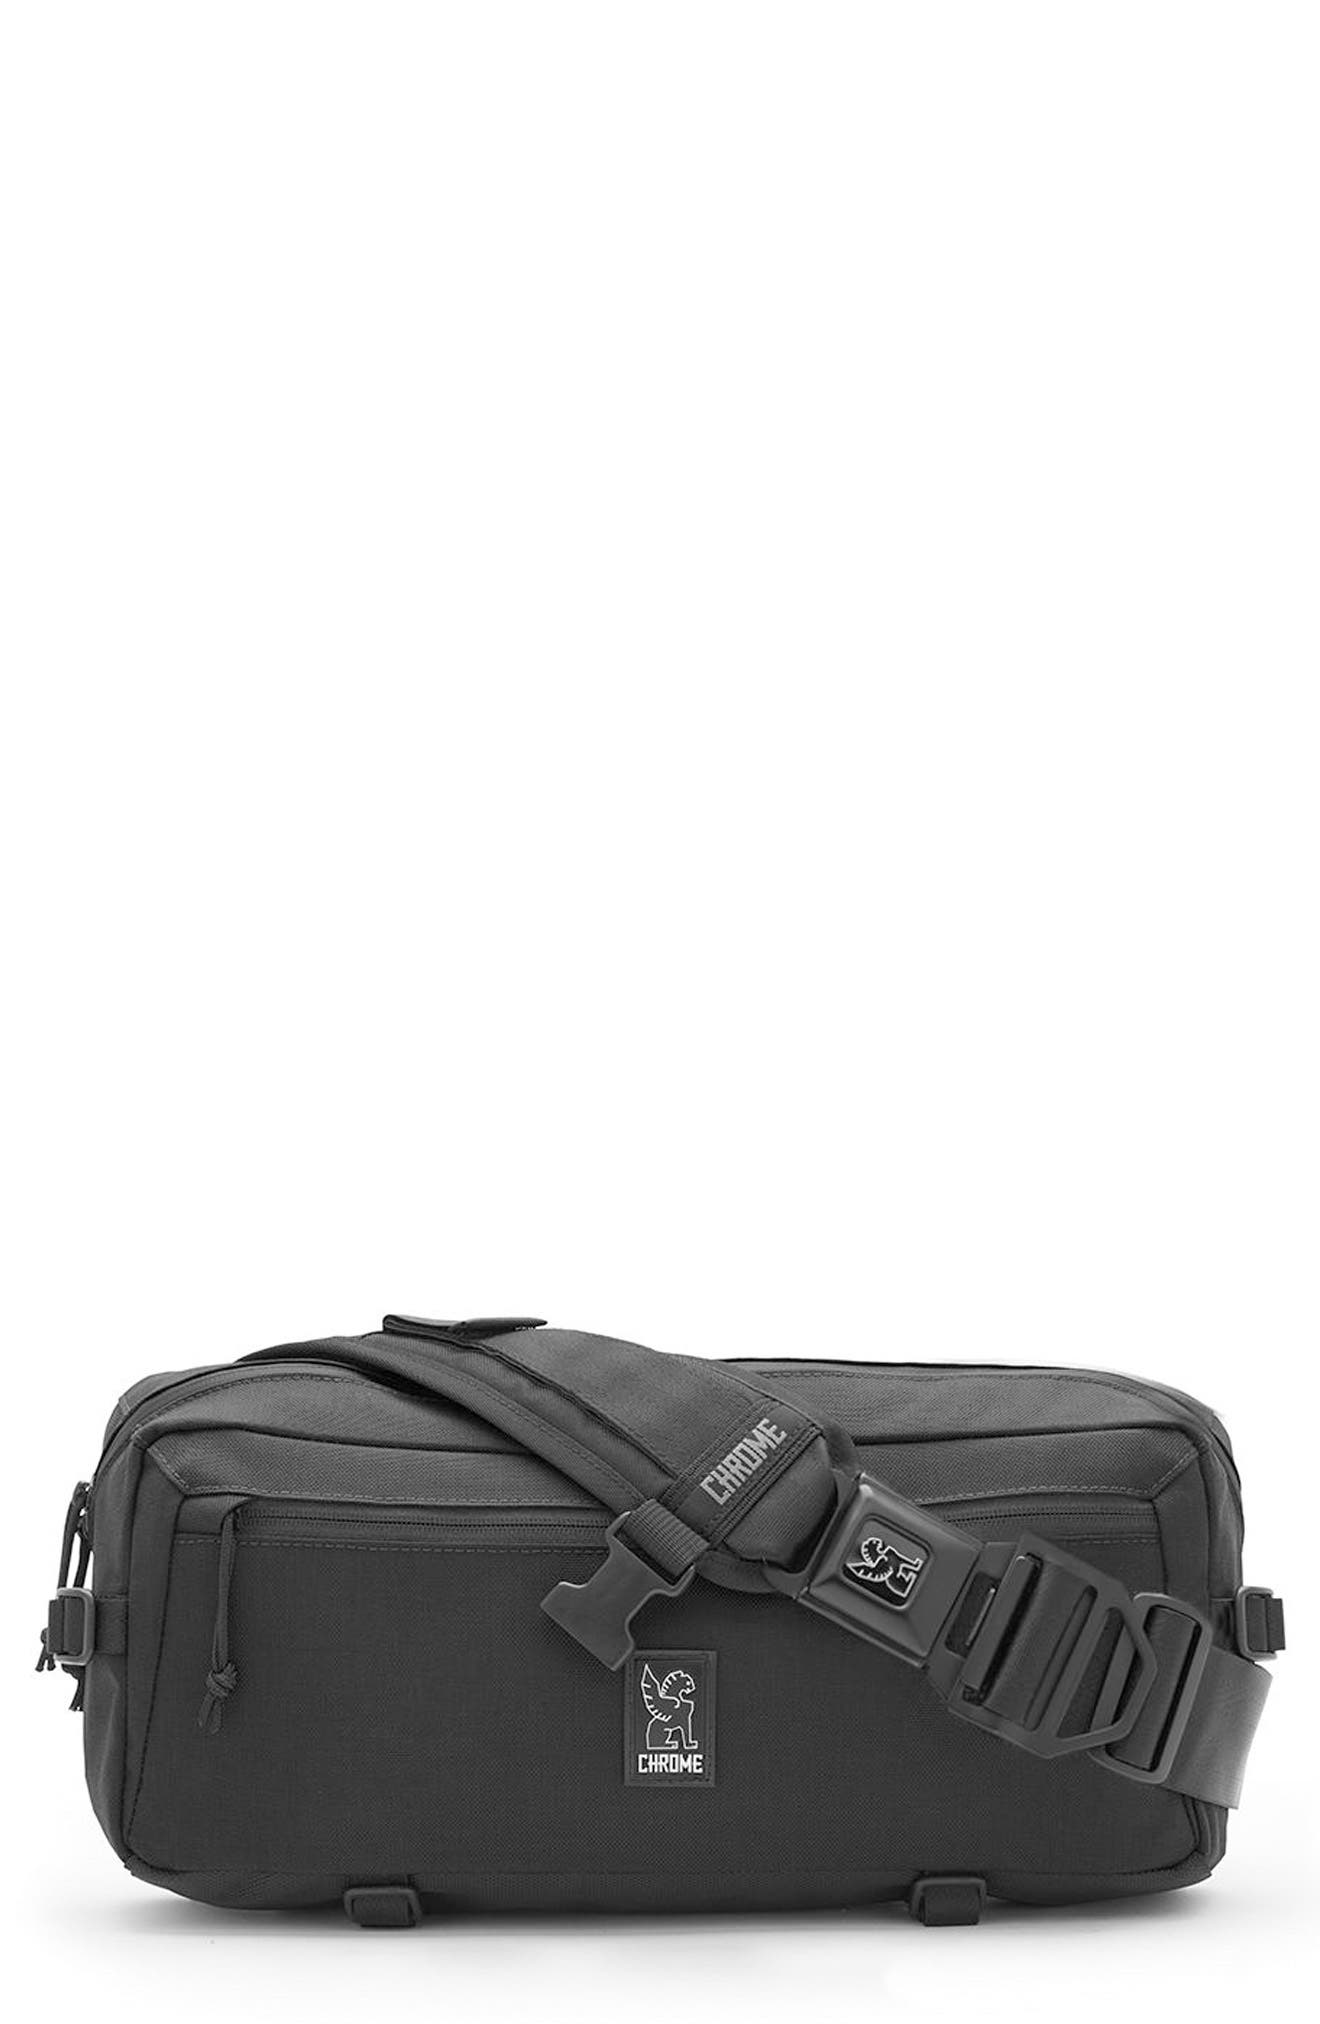 Kadet Messenger Bag,                             Main thumbnail 1, color,                             ALL BLACK